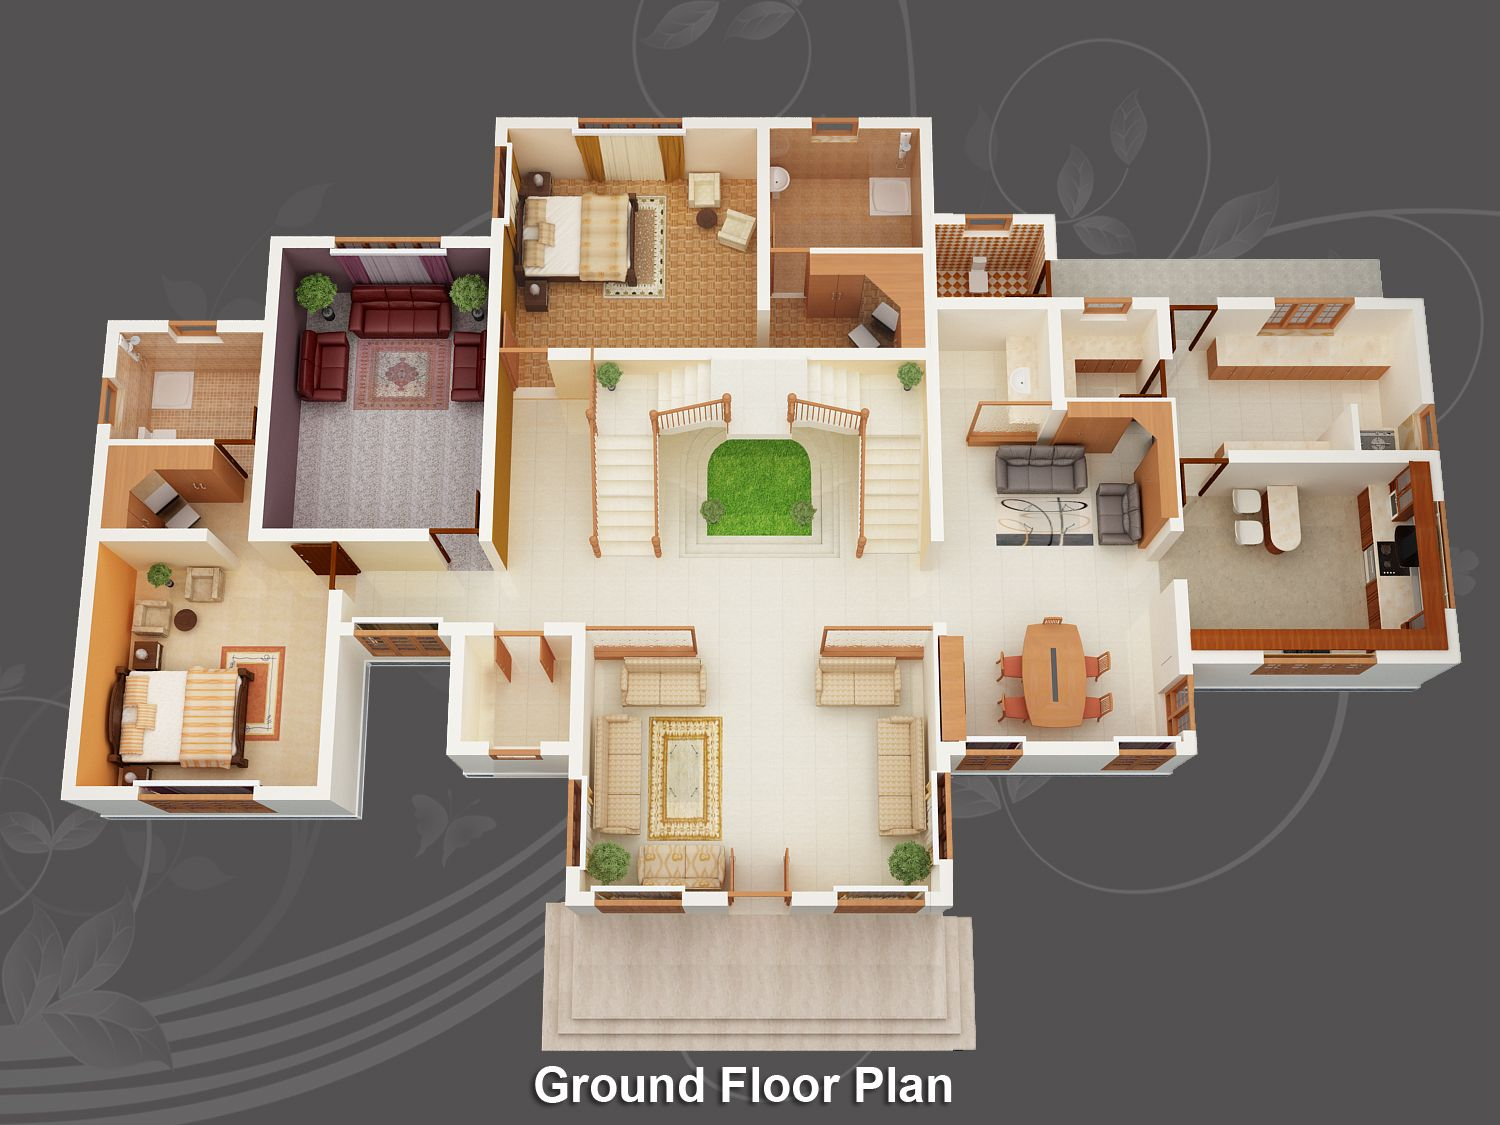 Free House Plan Design Image For Free Home Design Plans 3d Wallpaper Desktop